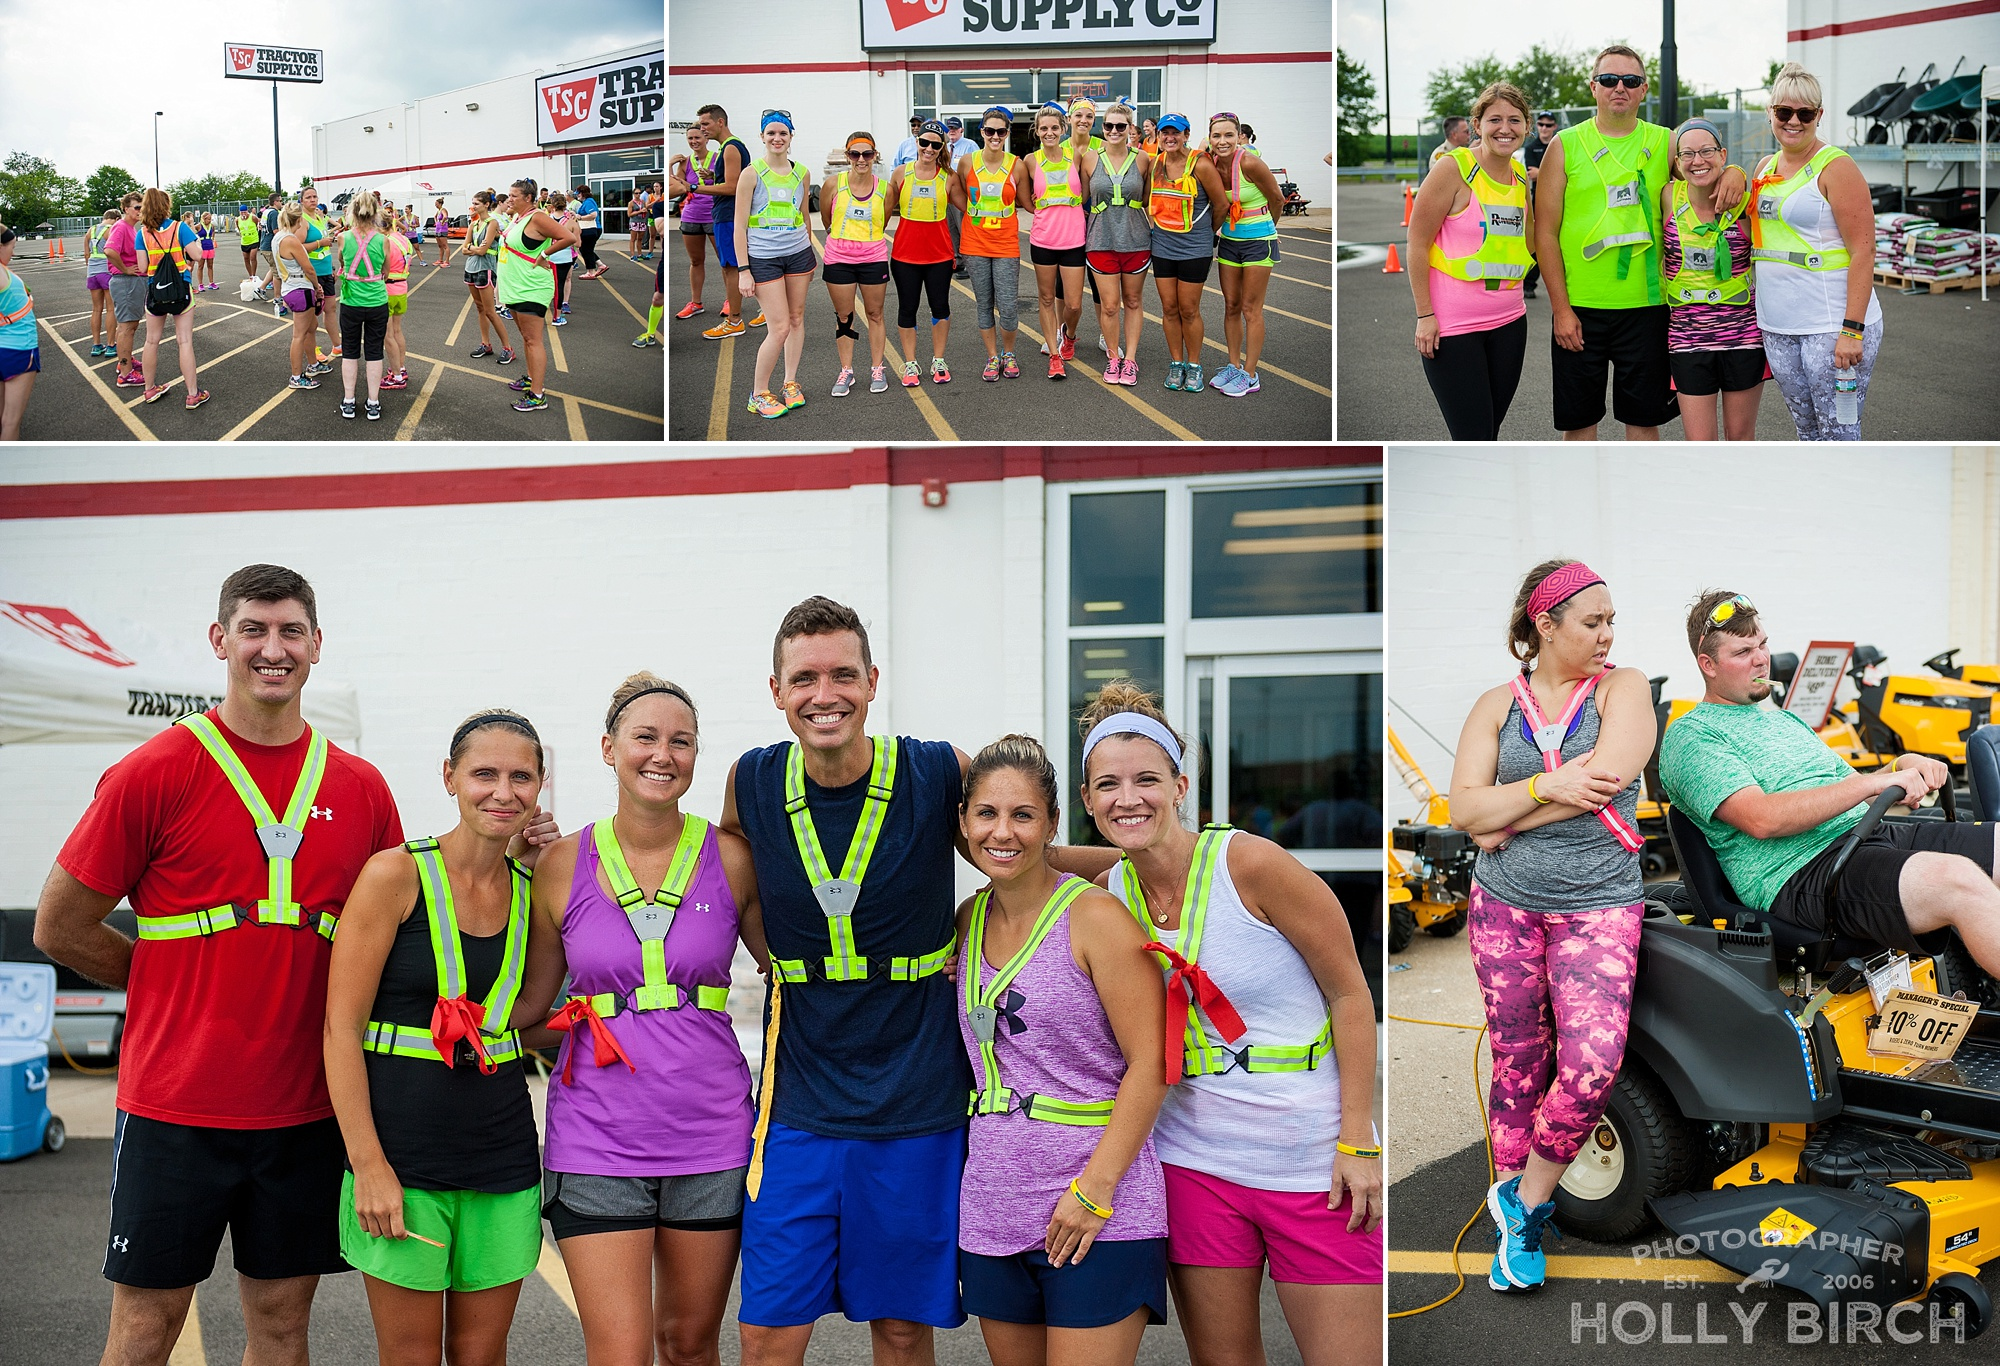 Tractor Supply hosts a runner oasis every year